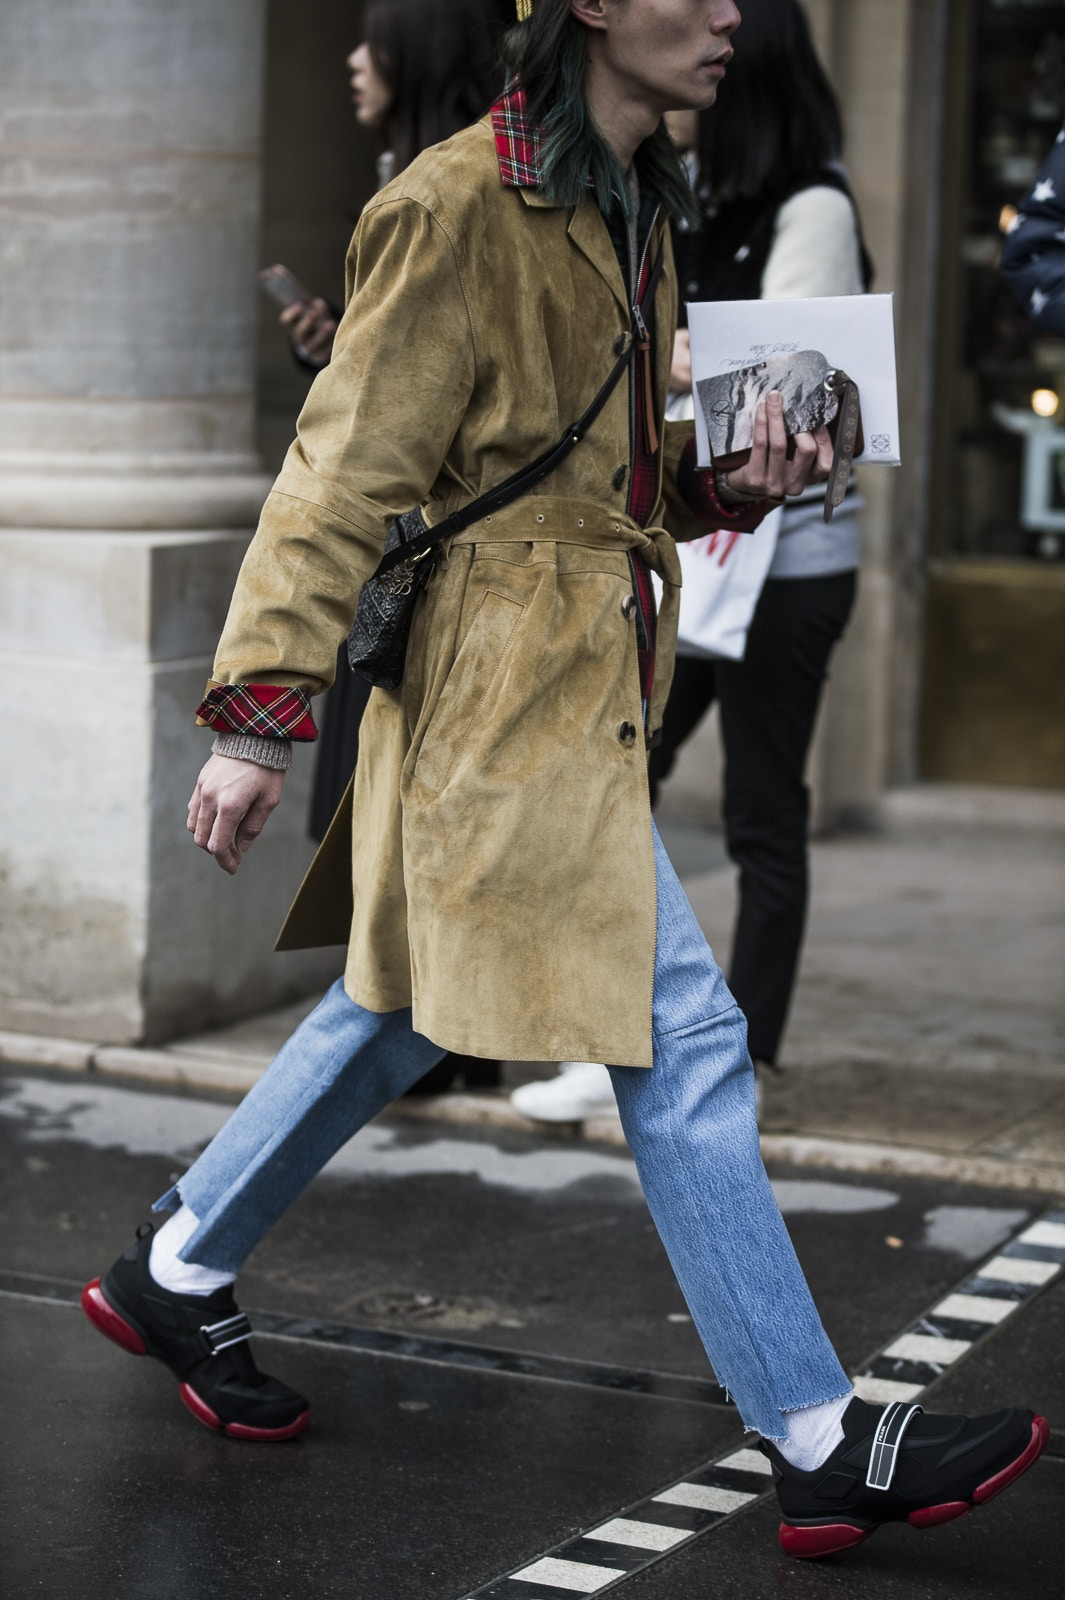 paris-fashion-week-fall-winter-2018-street-style-day-2-15-1.jpg